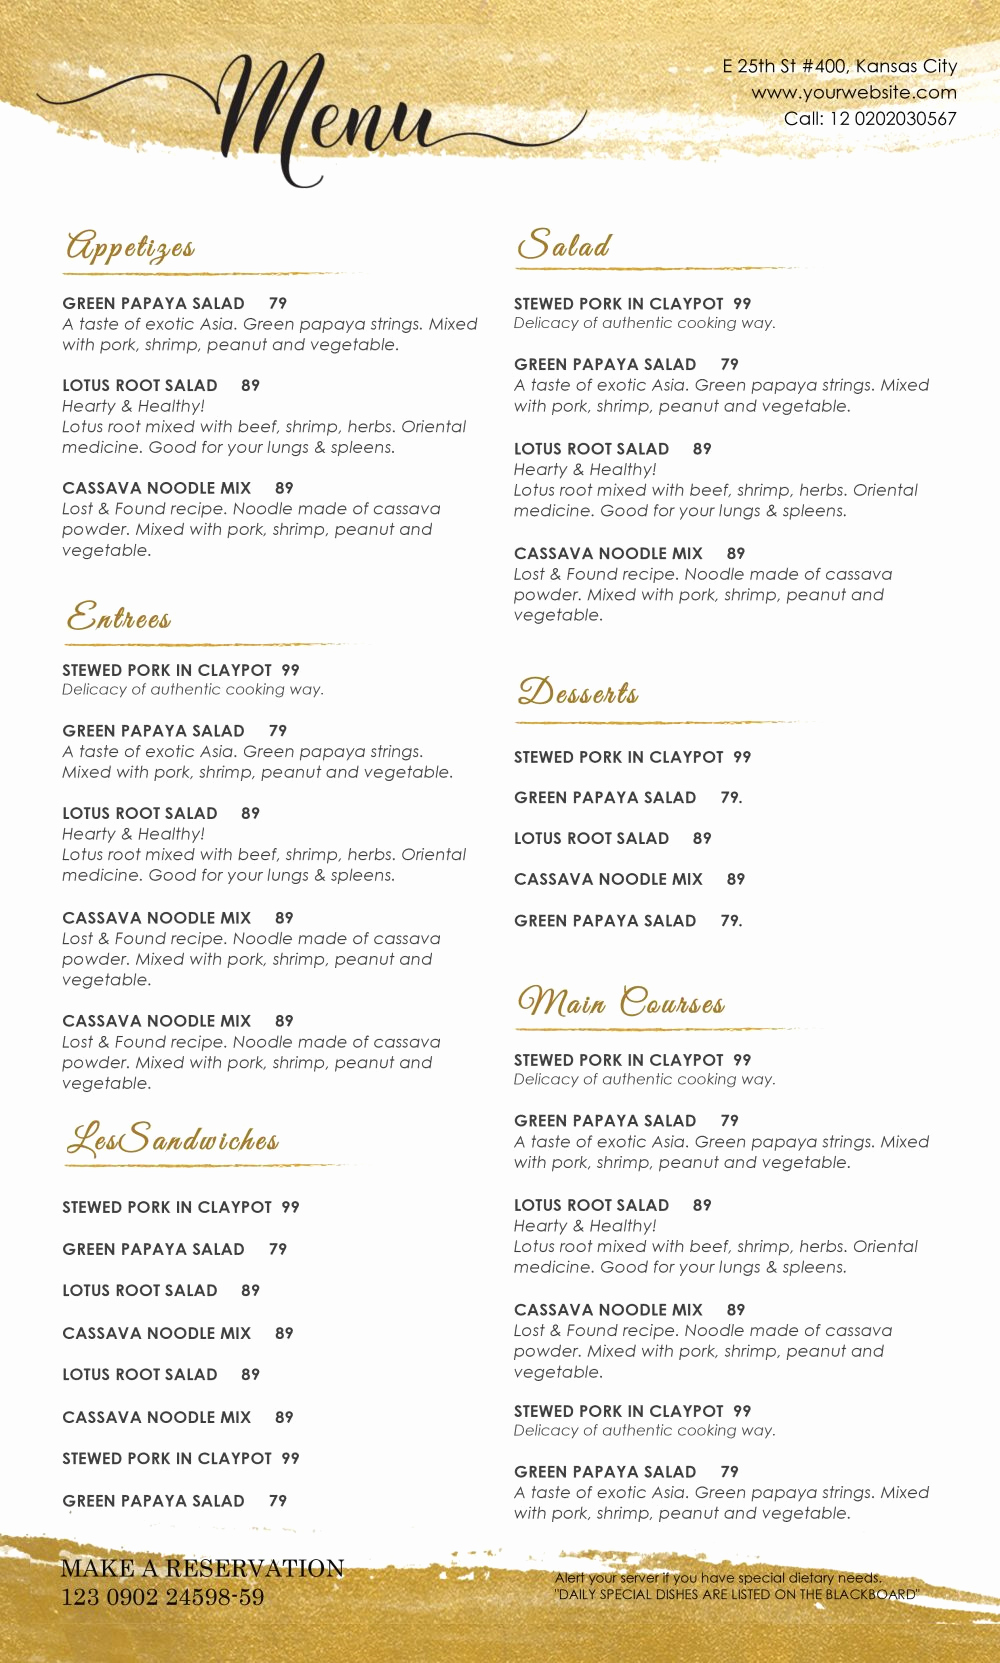 Free Restaurant Menu Template Word New Design & Templates Menu Templates Wedding Menu Food